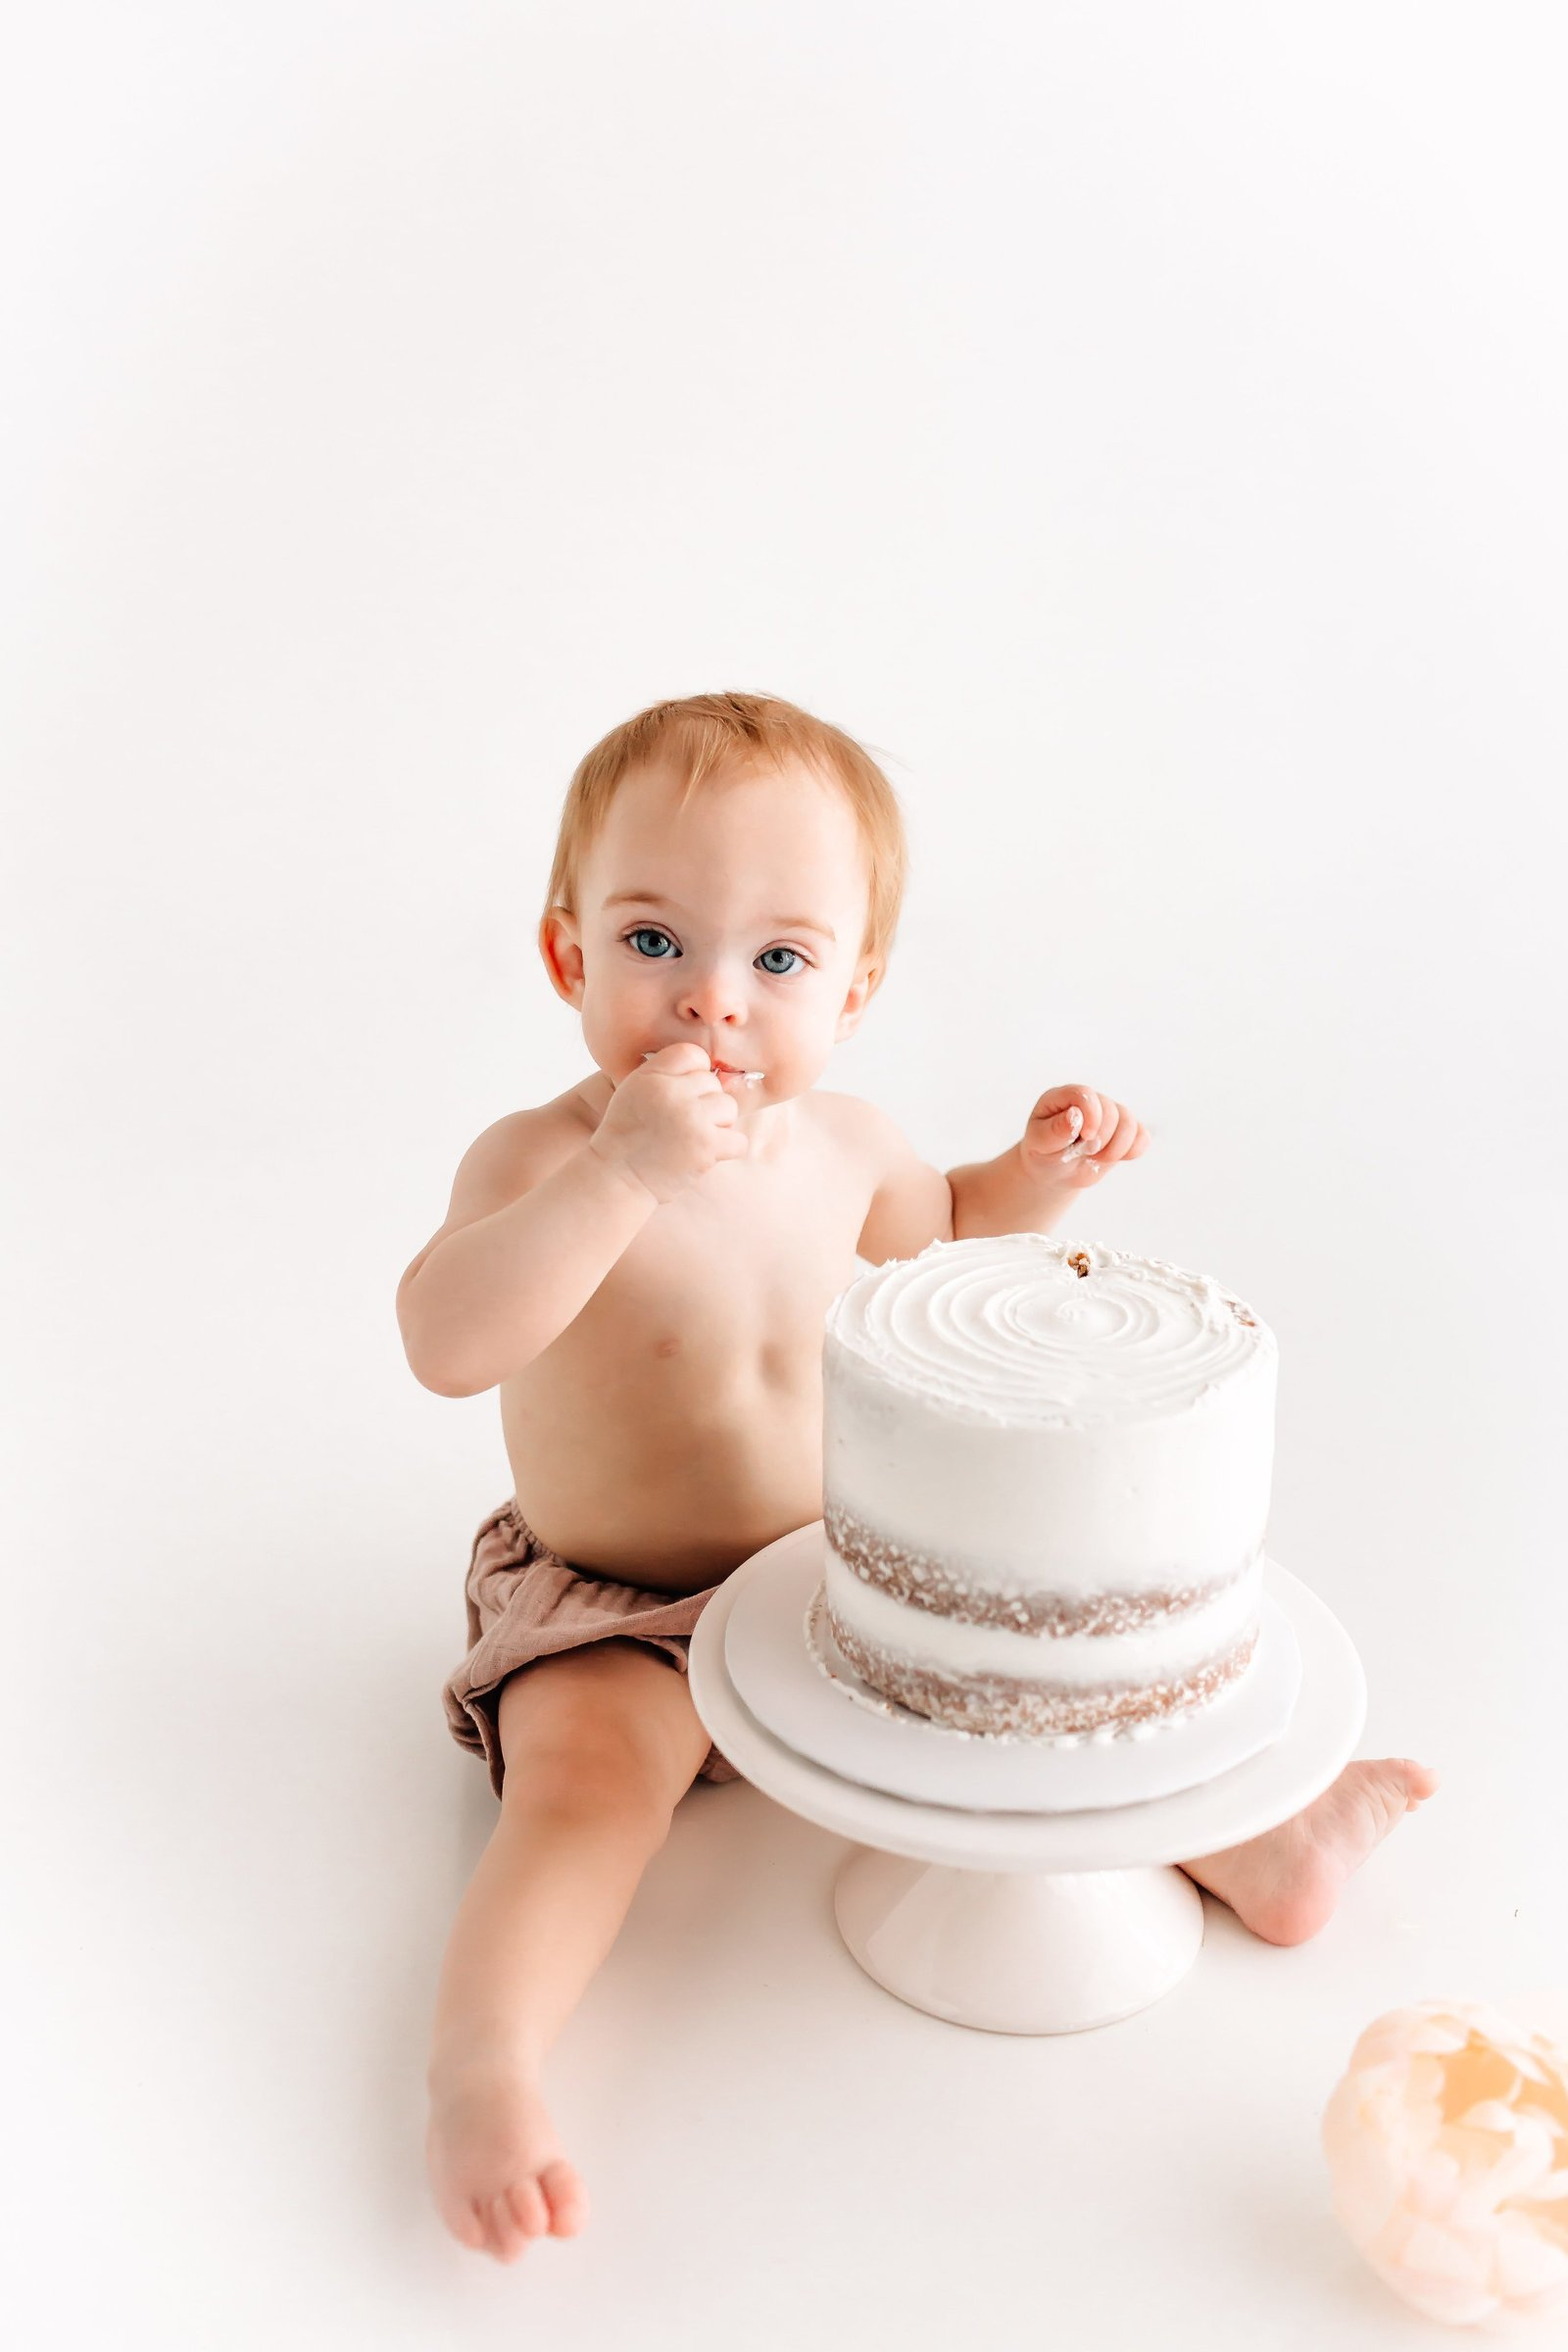 St_Louis_Baby_Photographer_Kelly_Laramore_Photography_78